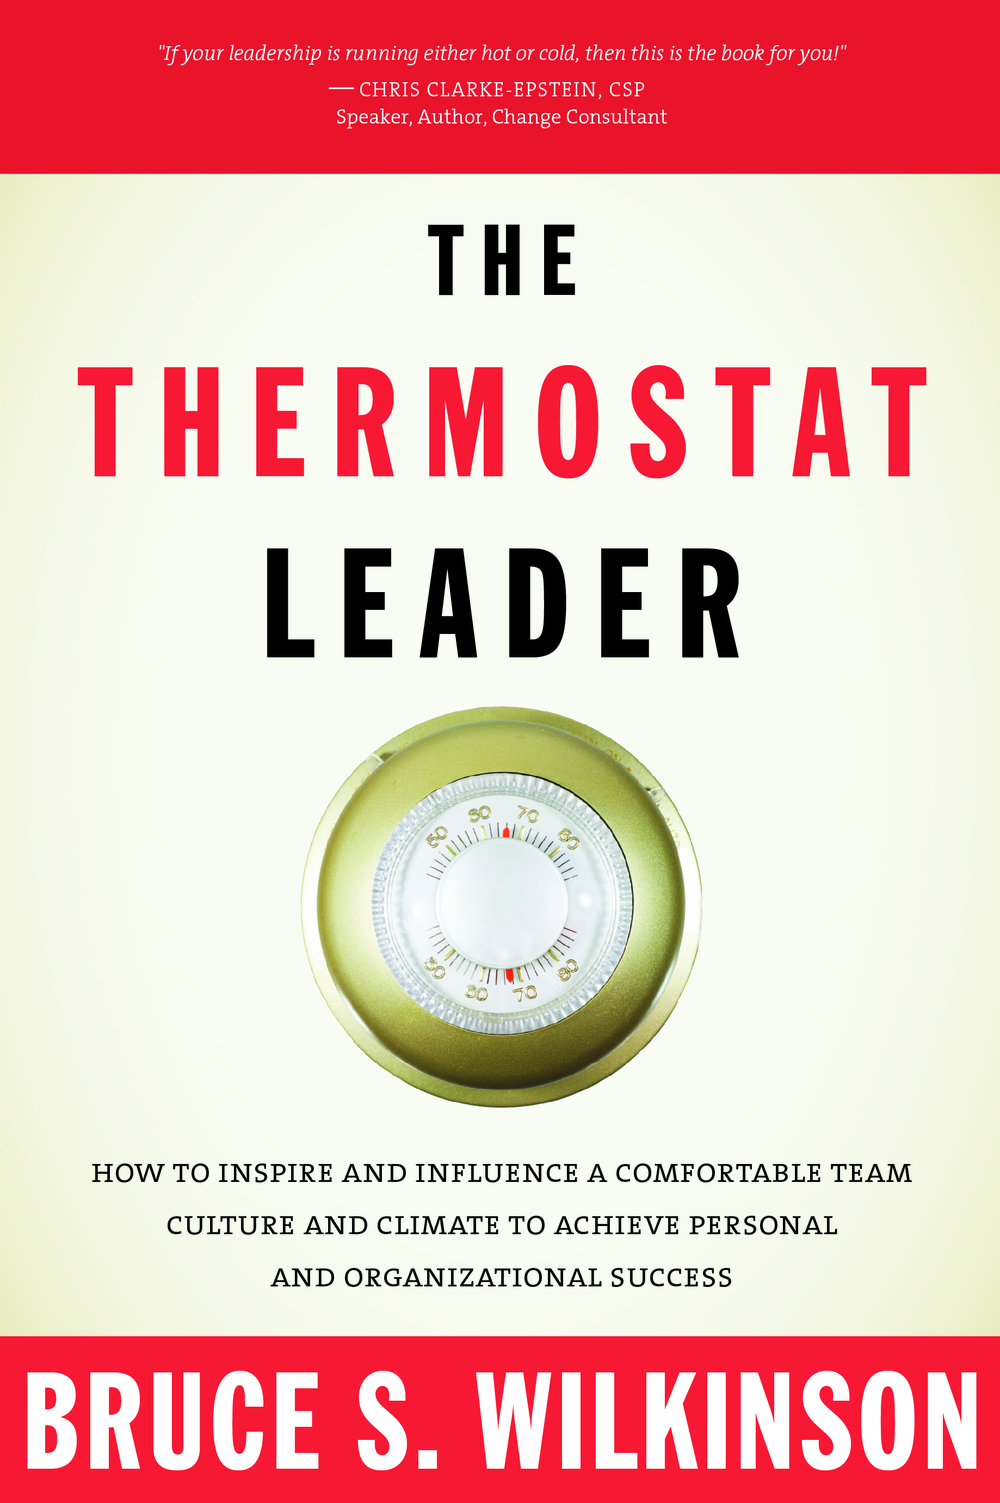 The Termostat Leader, Bruce Wilkinson